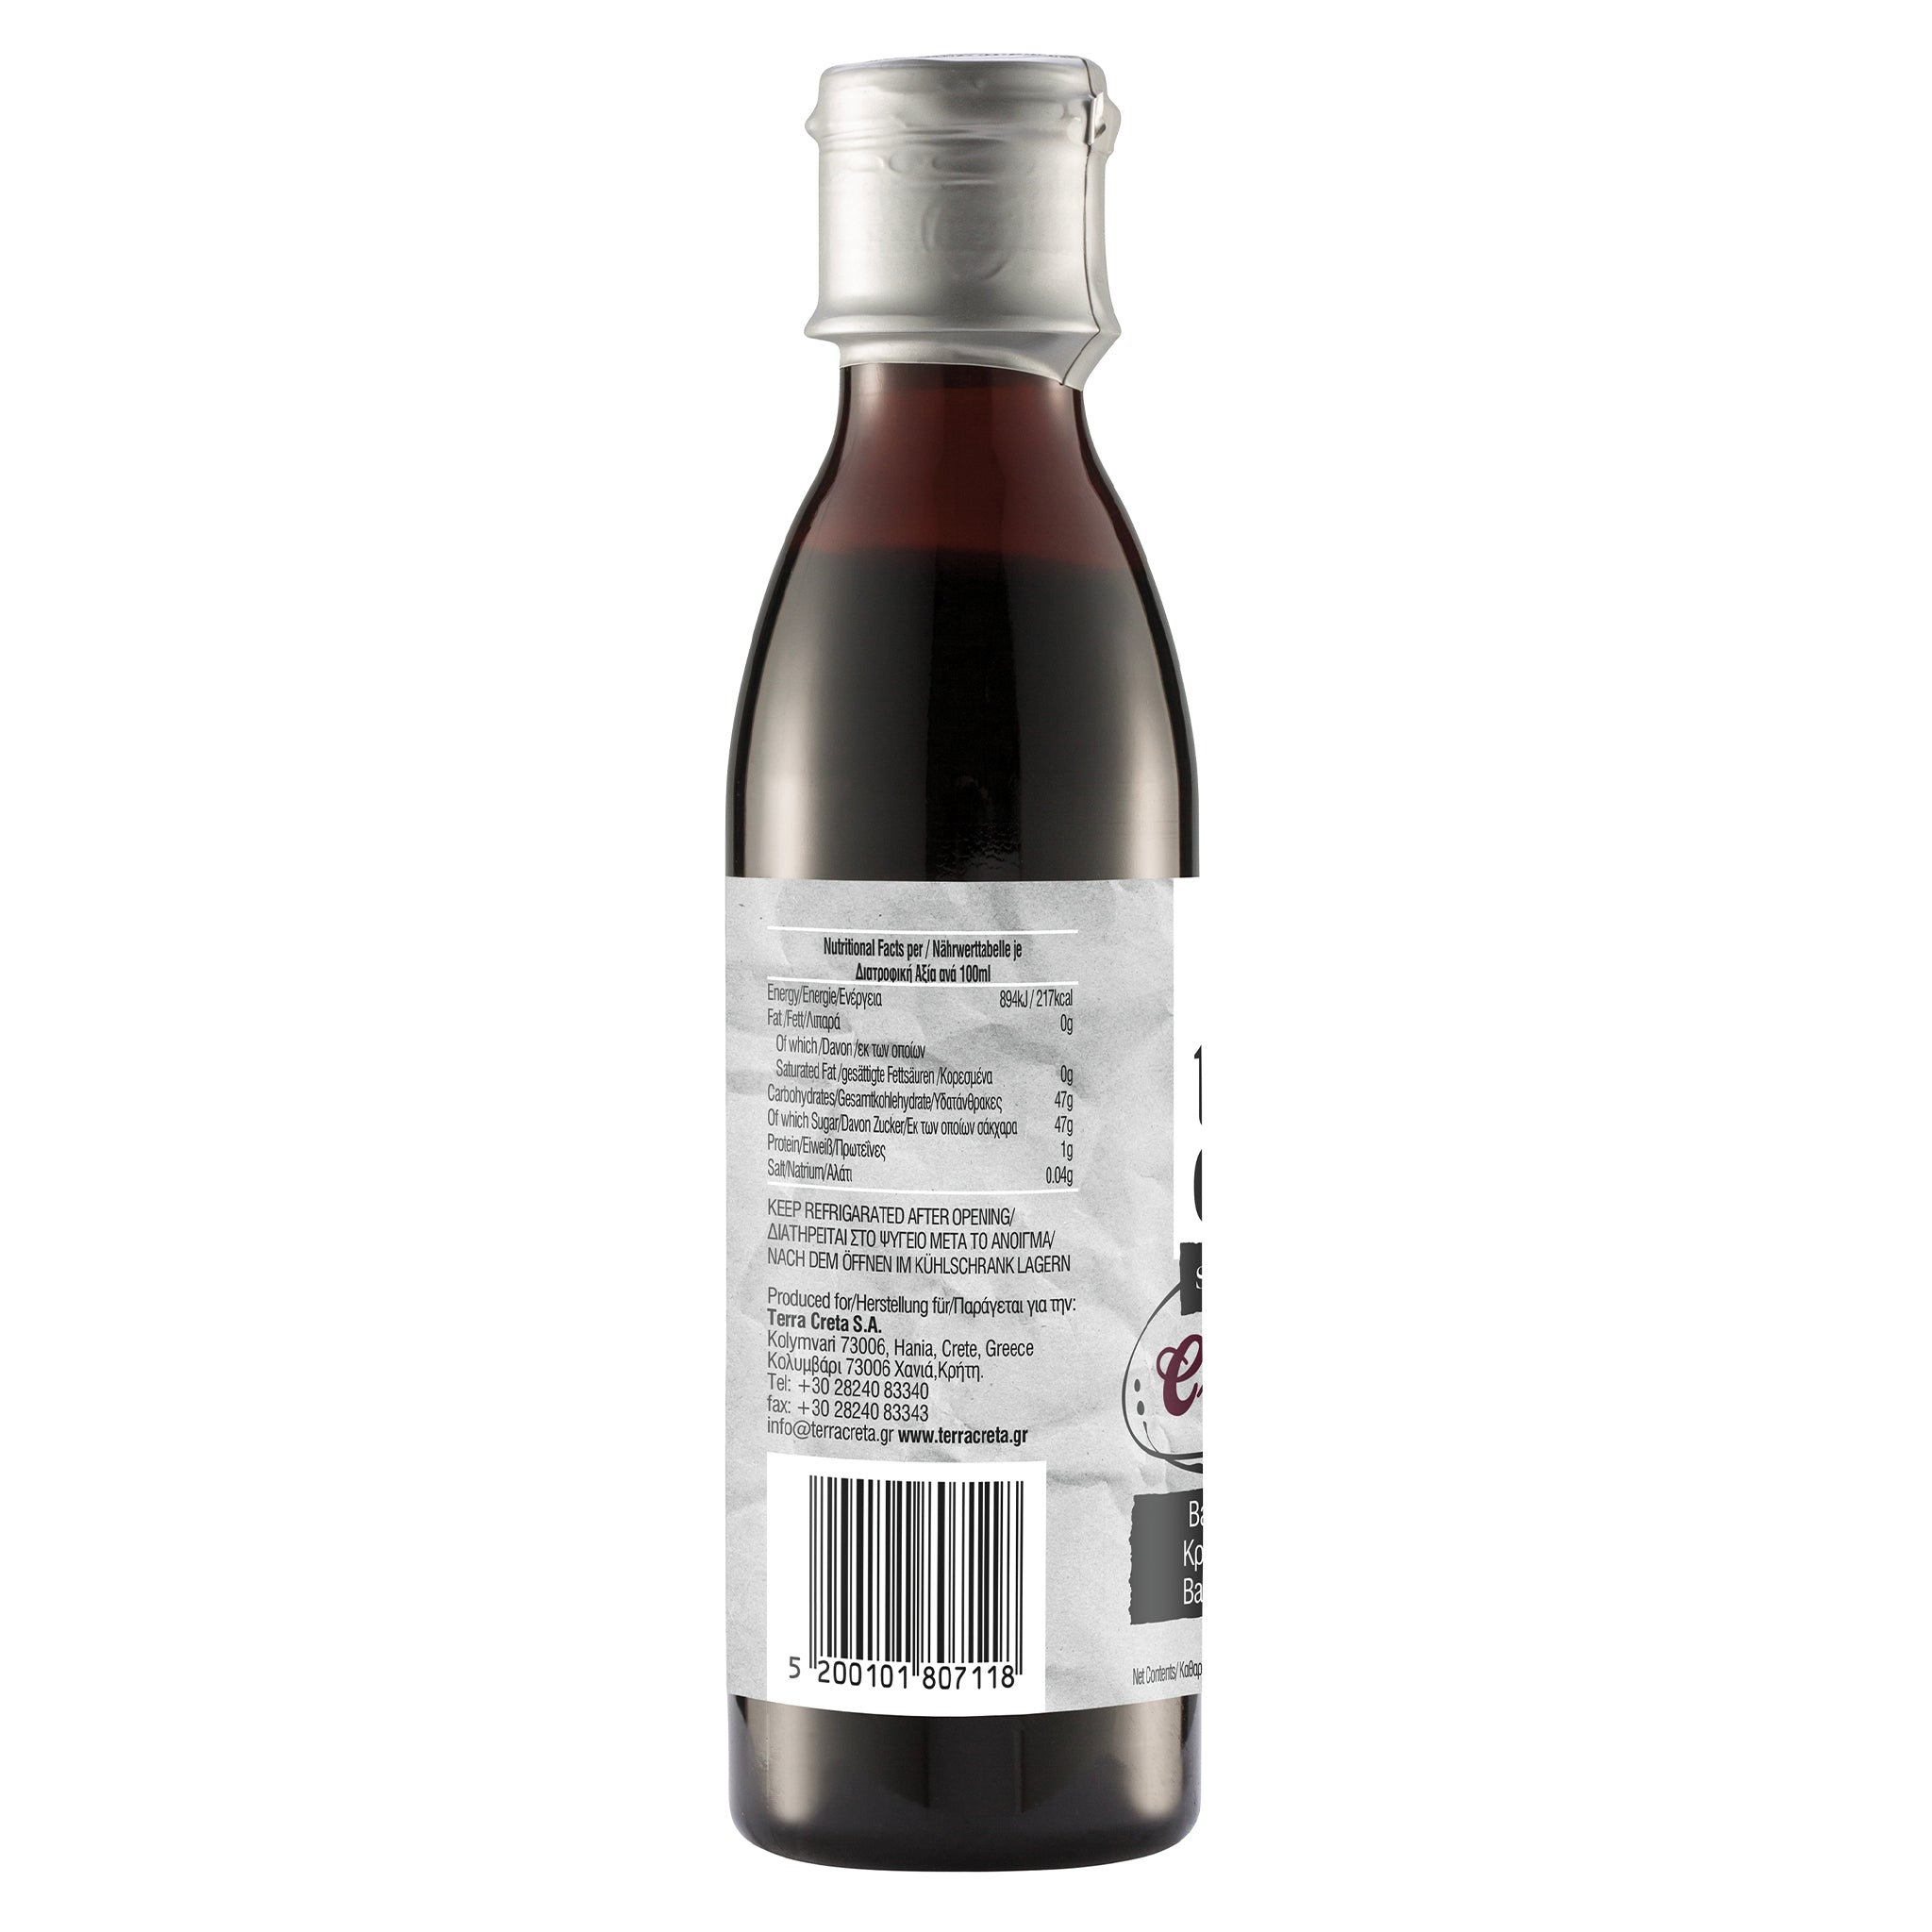 Terra Creta Greek Balsamic Cream - 250ml